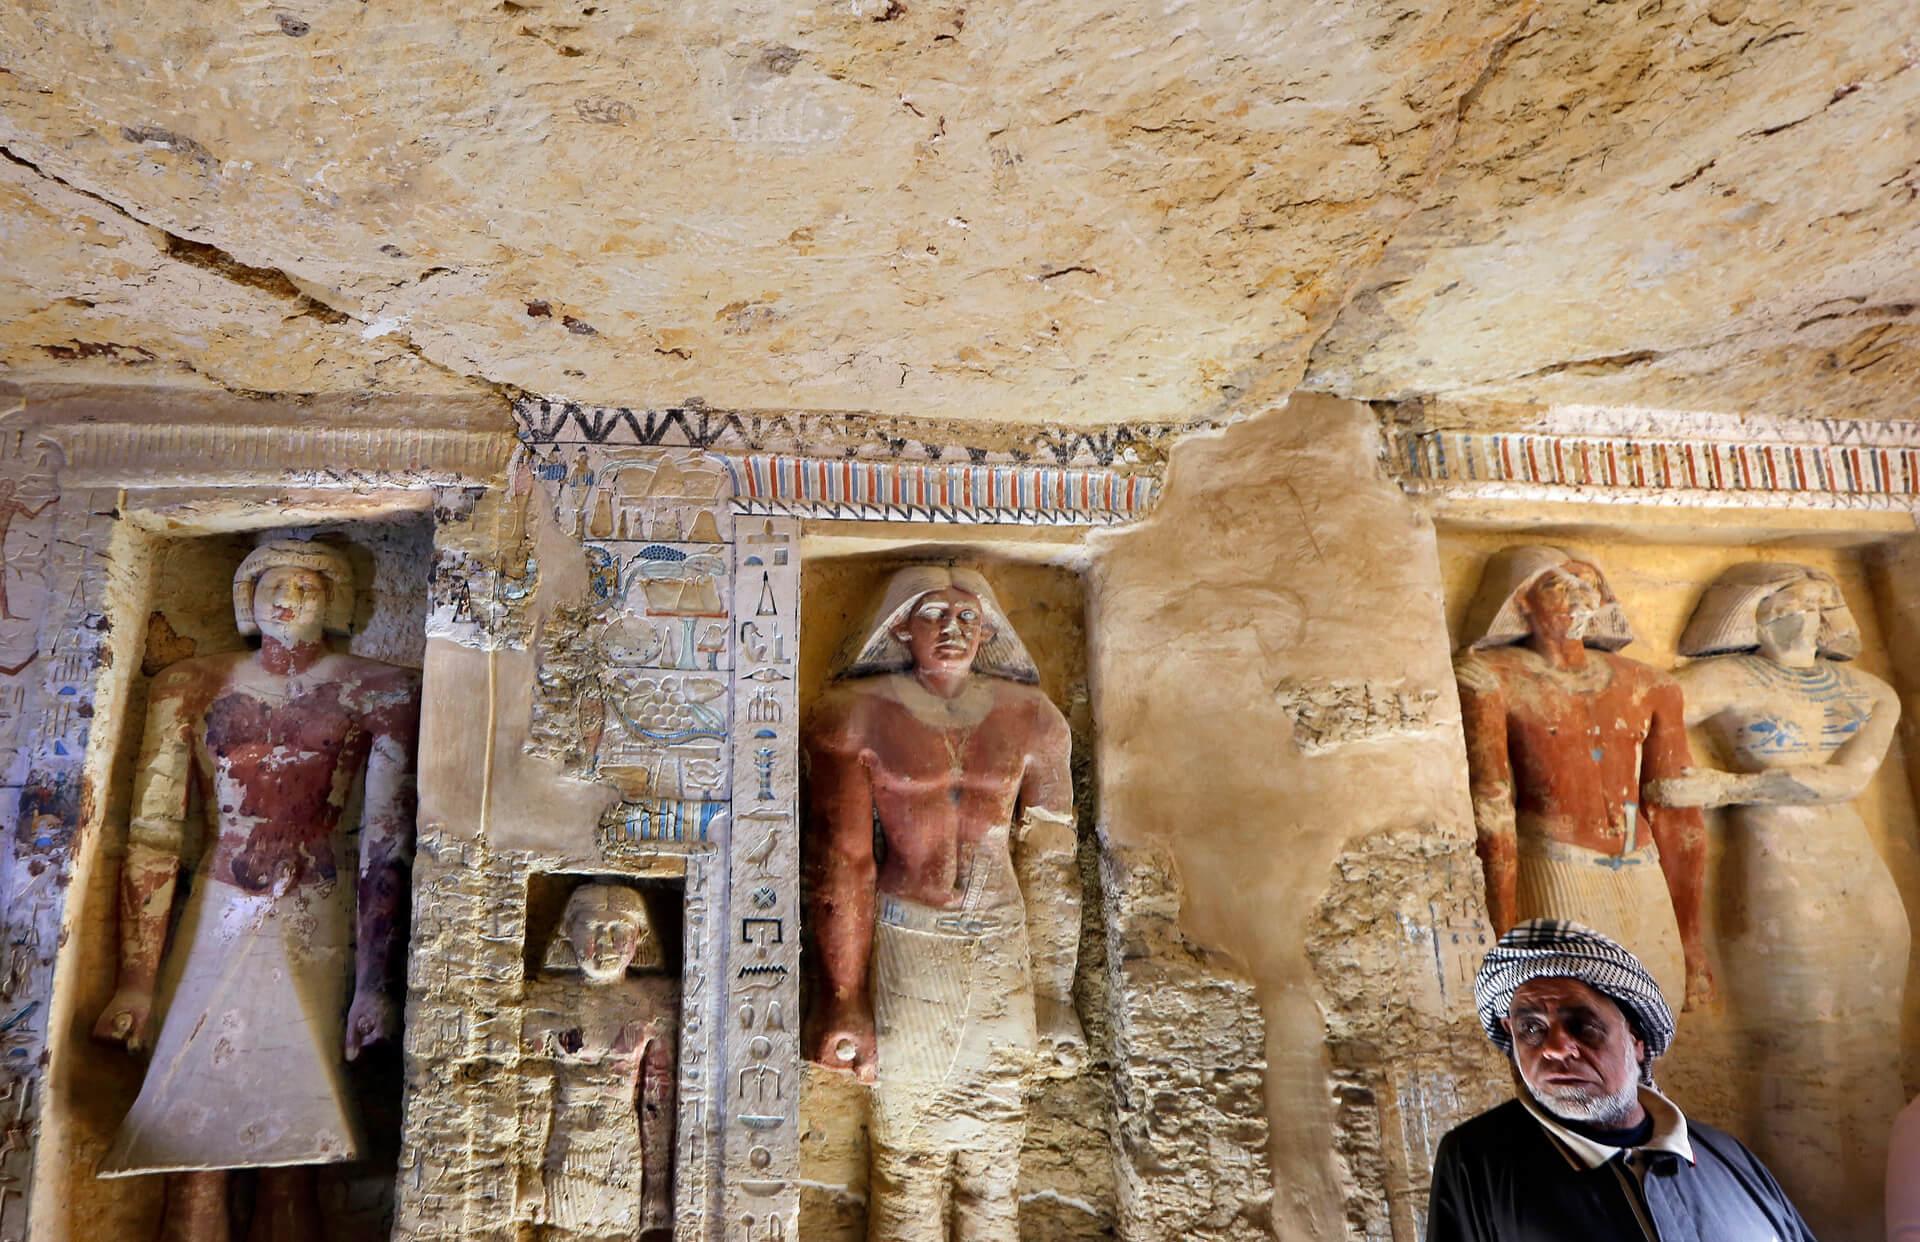 Stunning Photos Show 'One of a Kind' 4,400-Year-Old Tomb Just Discovered in Egypt 1